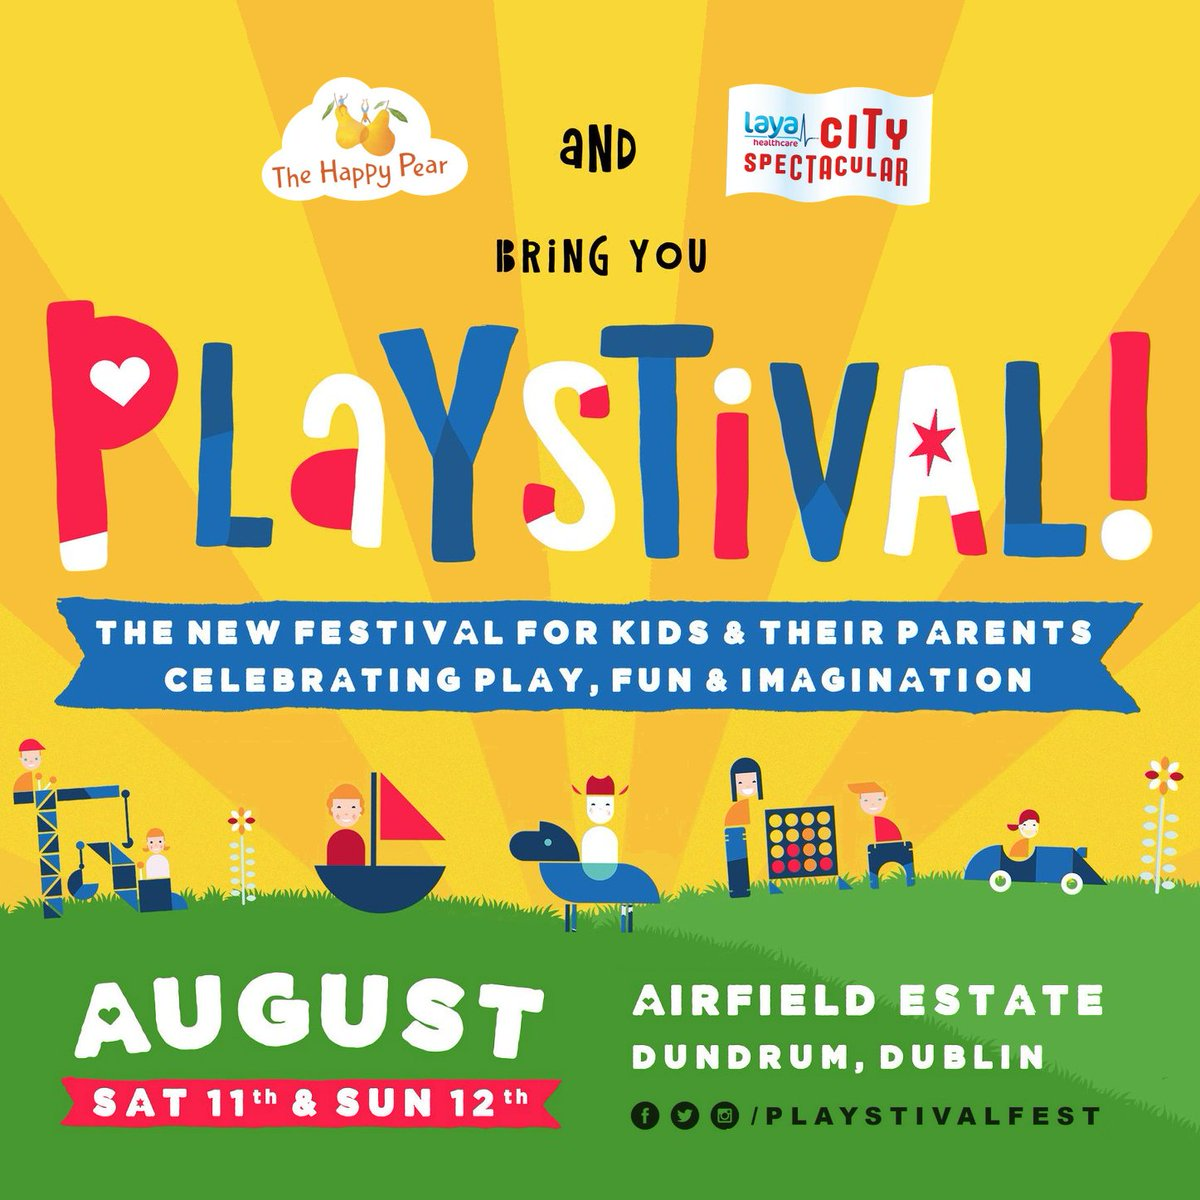 We have #free #family passes to #win for @playstivalfest 11- 12 August @AirfieldEstate! #Playstival, #Ireland's #new #summer #festival for #children showcases imaginative & #playpositive #games incl. #French company #Festijeux Simply #Like & #RETWEEET #RT! http://playstival.ie